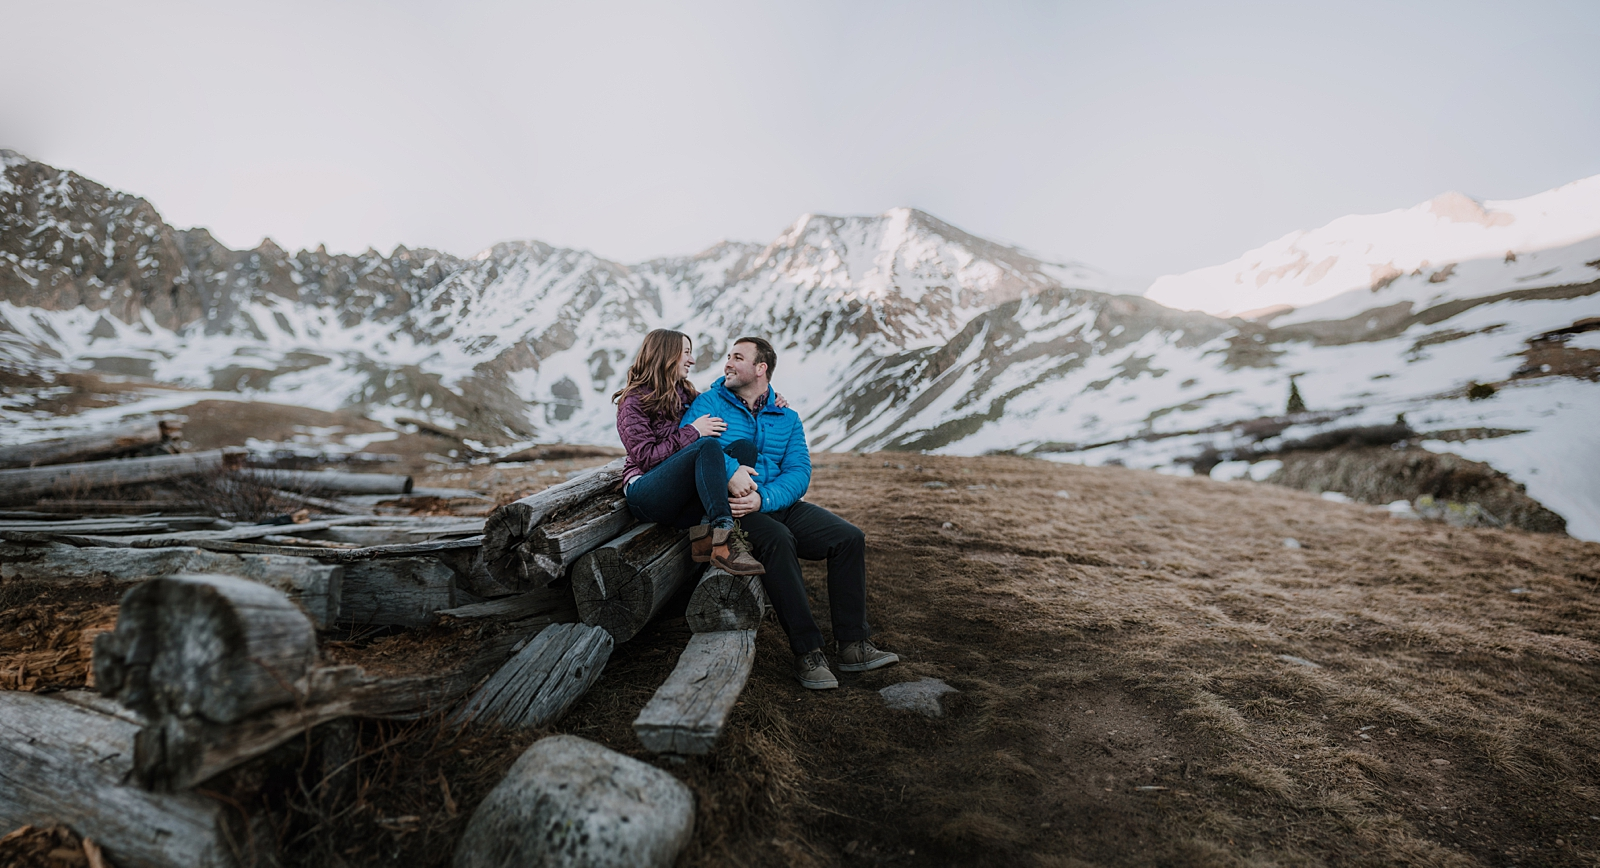 winter hiking mayflower gulch leadville and copper colorado, backcountry skiing to mayflower gulch, sunrise at mayflower gulch, mayflower gulch engagements, leadville wedding photographer